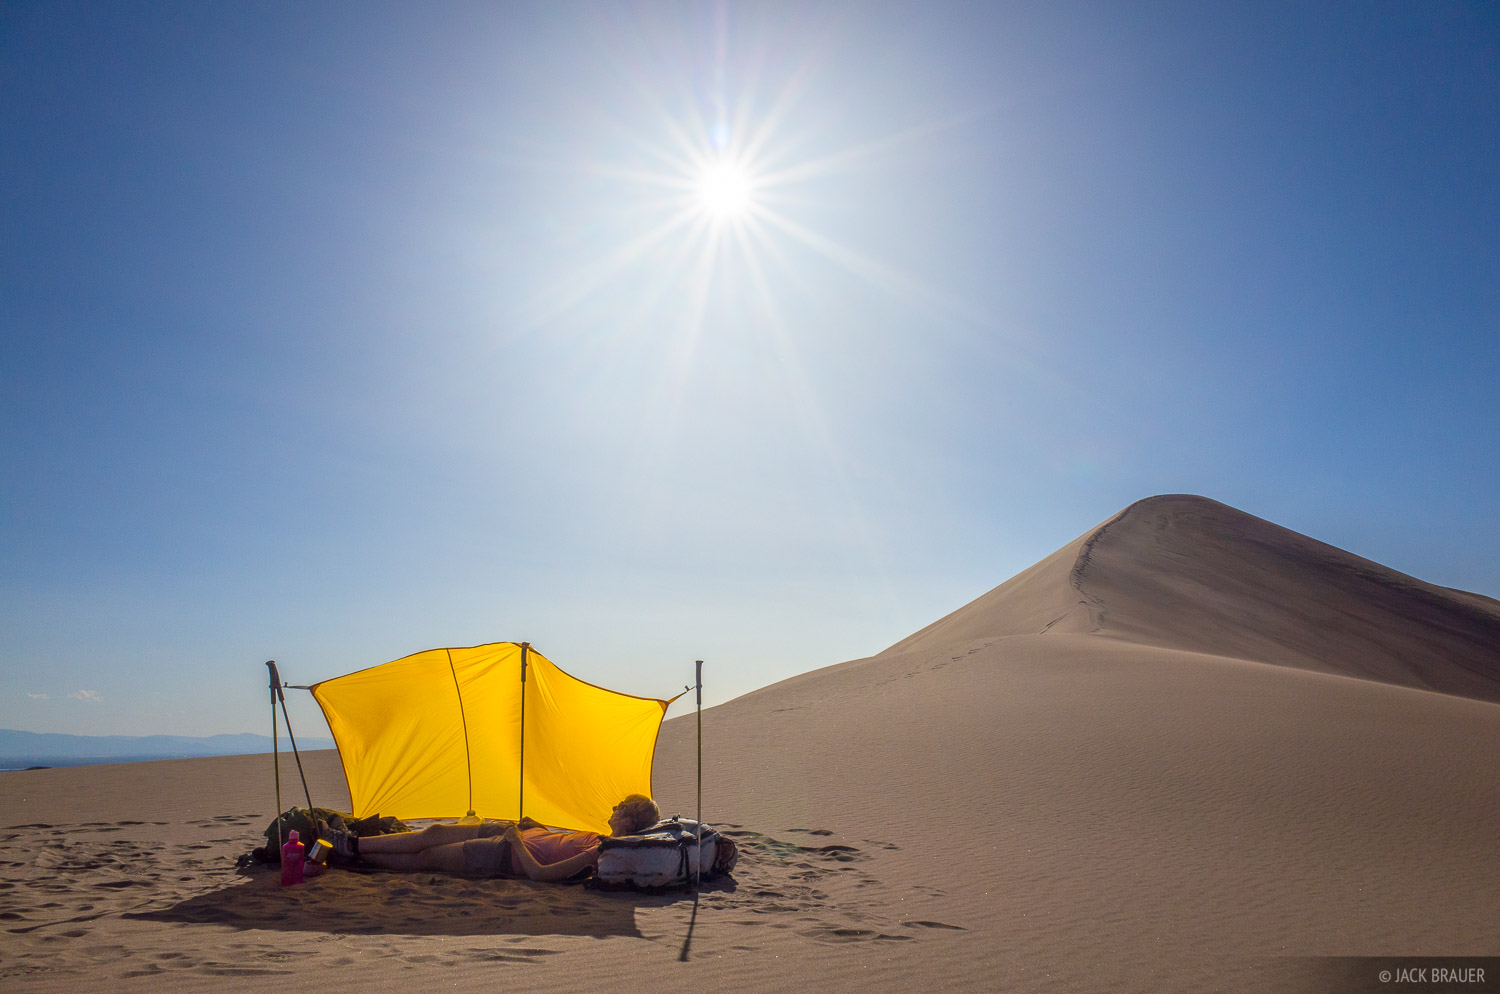 Taking shelter from the sun deep in the dunes.